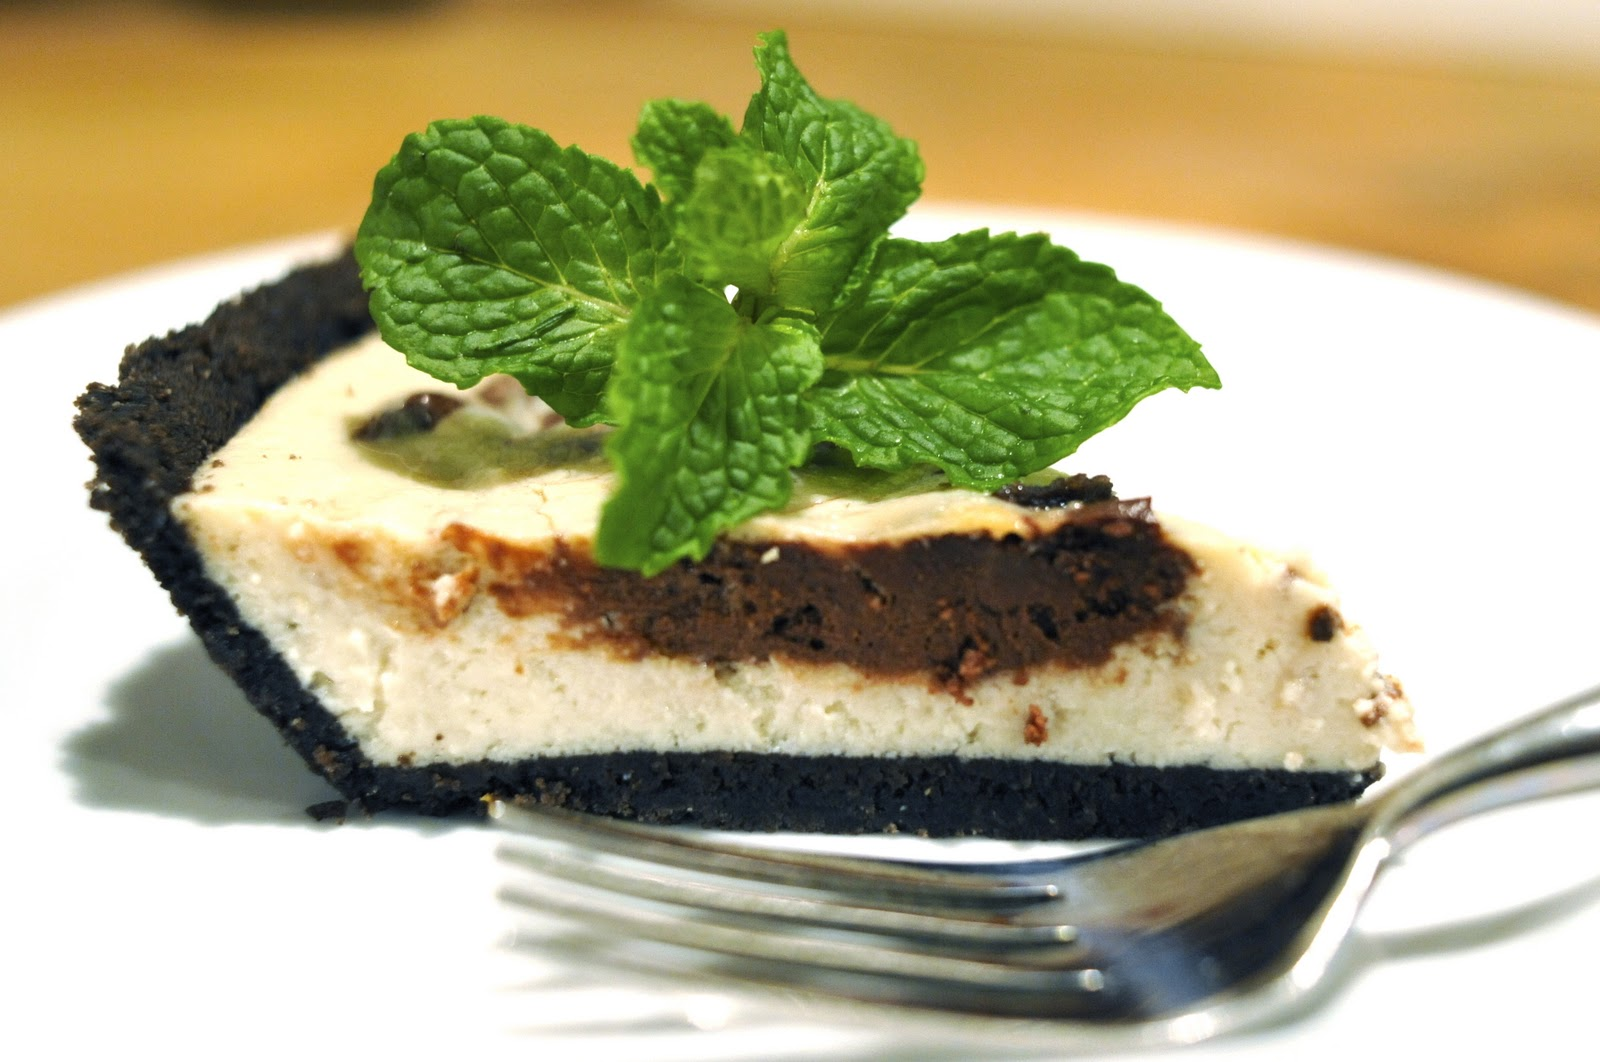 Vegan Good Things: Sweet Utopia's Mint-Chocolate Swirl Cheesecake